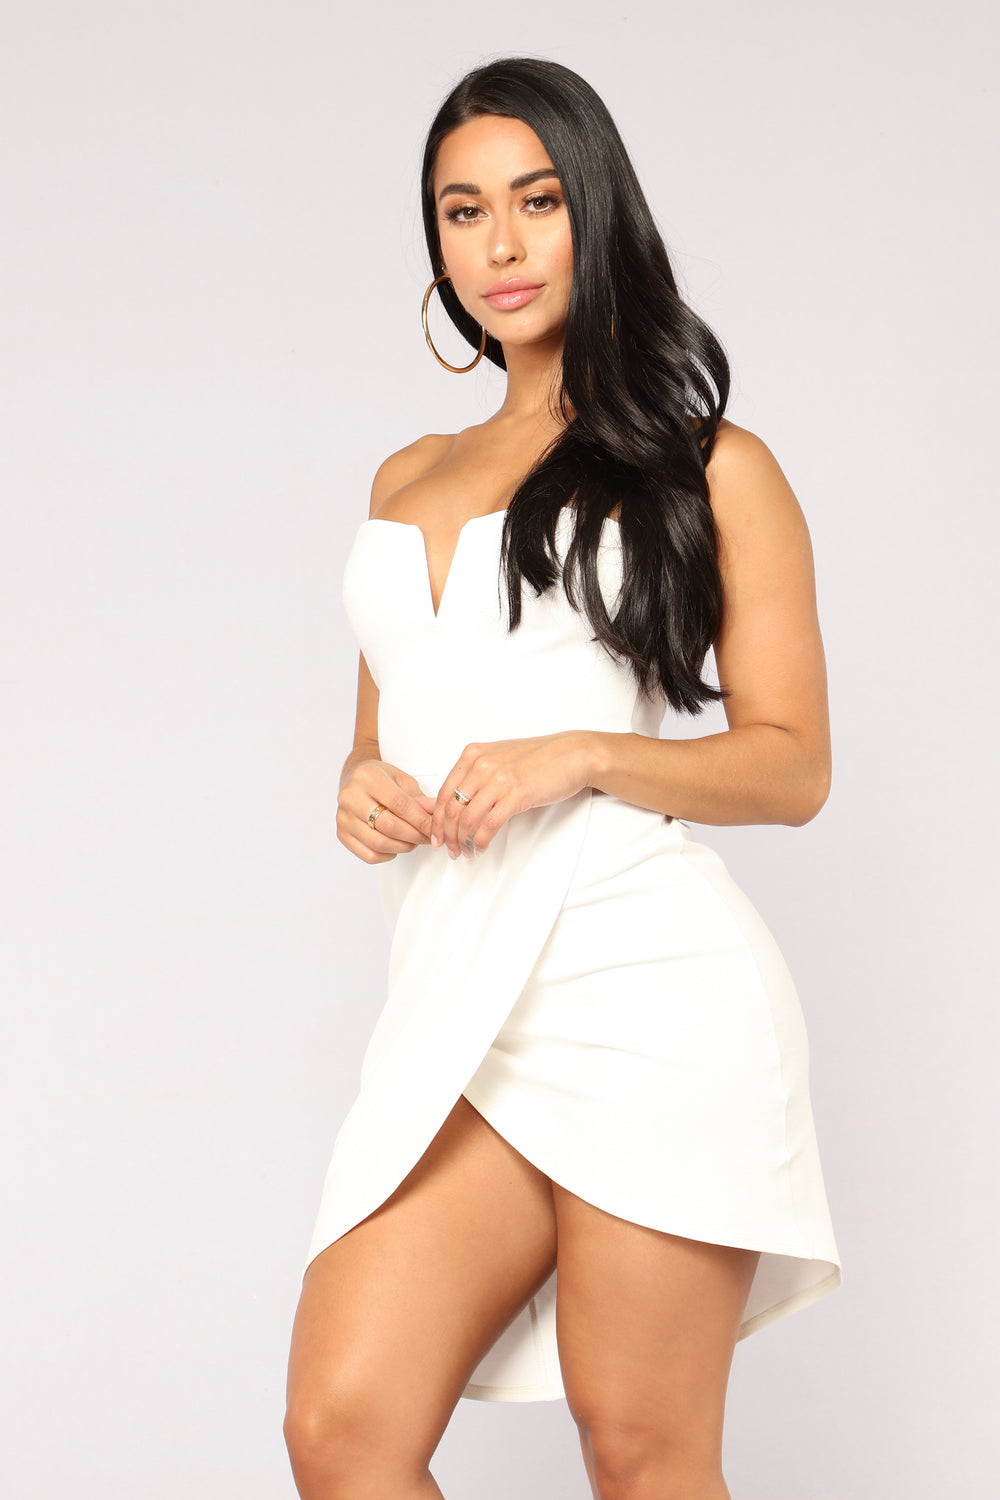 Hannah Asymmetrical Dress - Off White